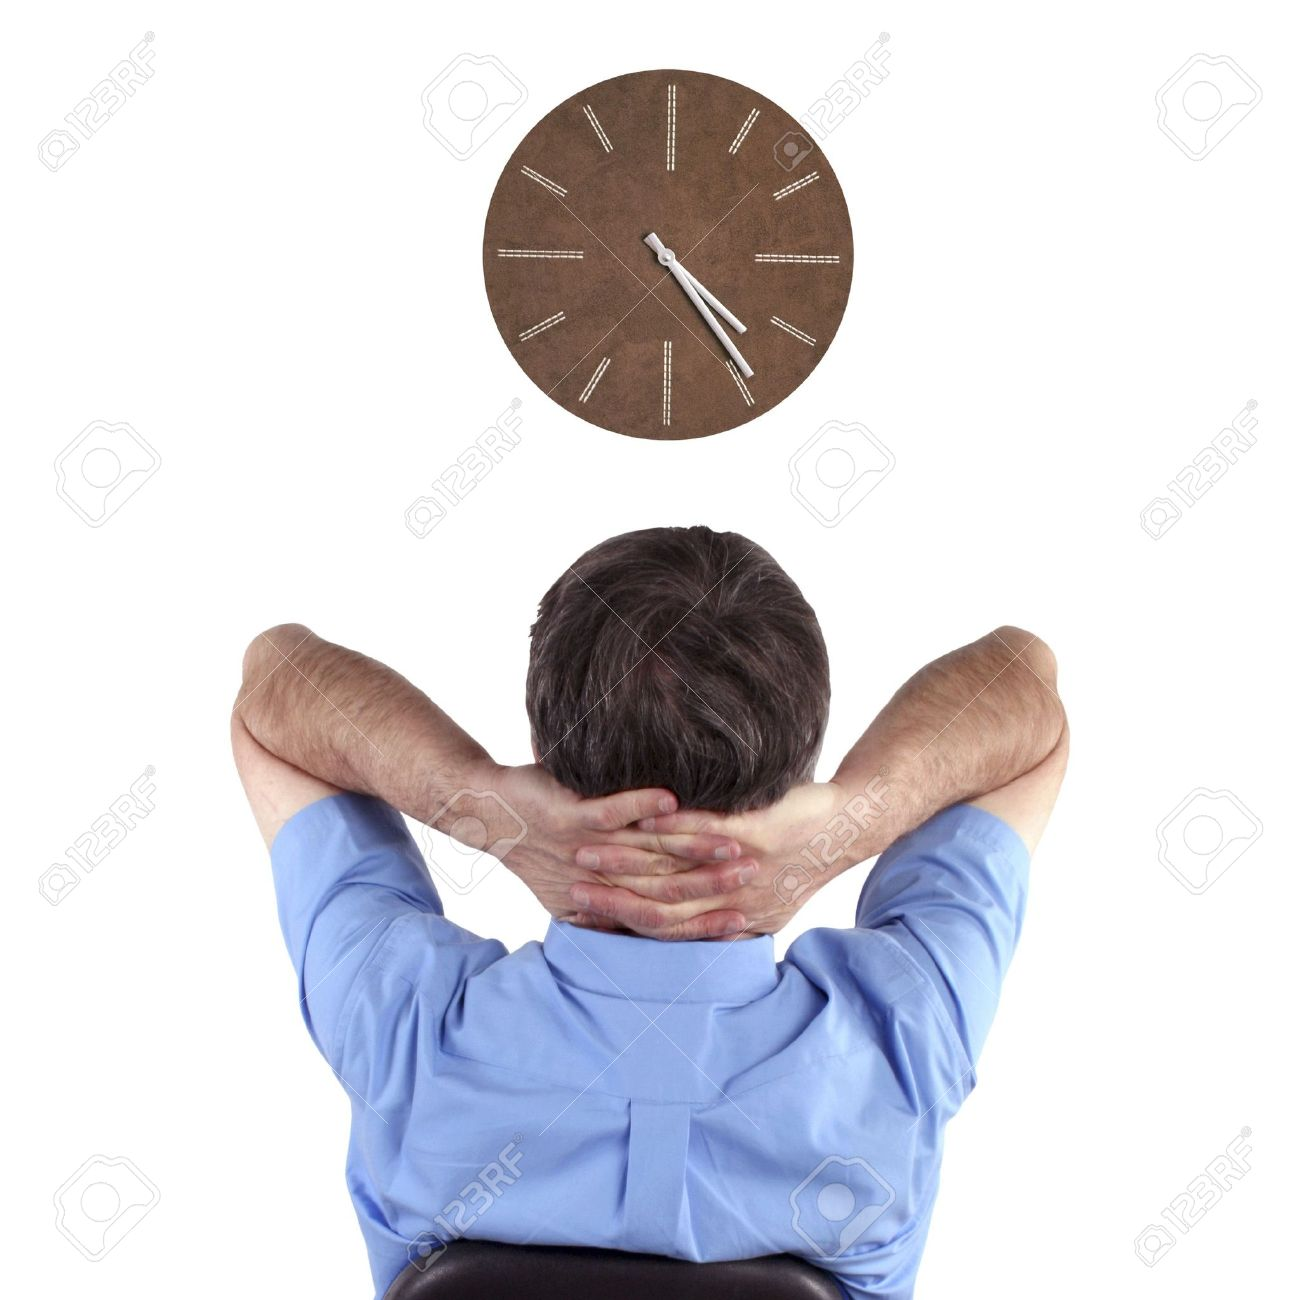 Office-worker-watches-clock.jpg